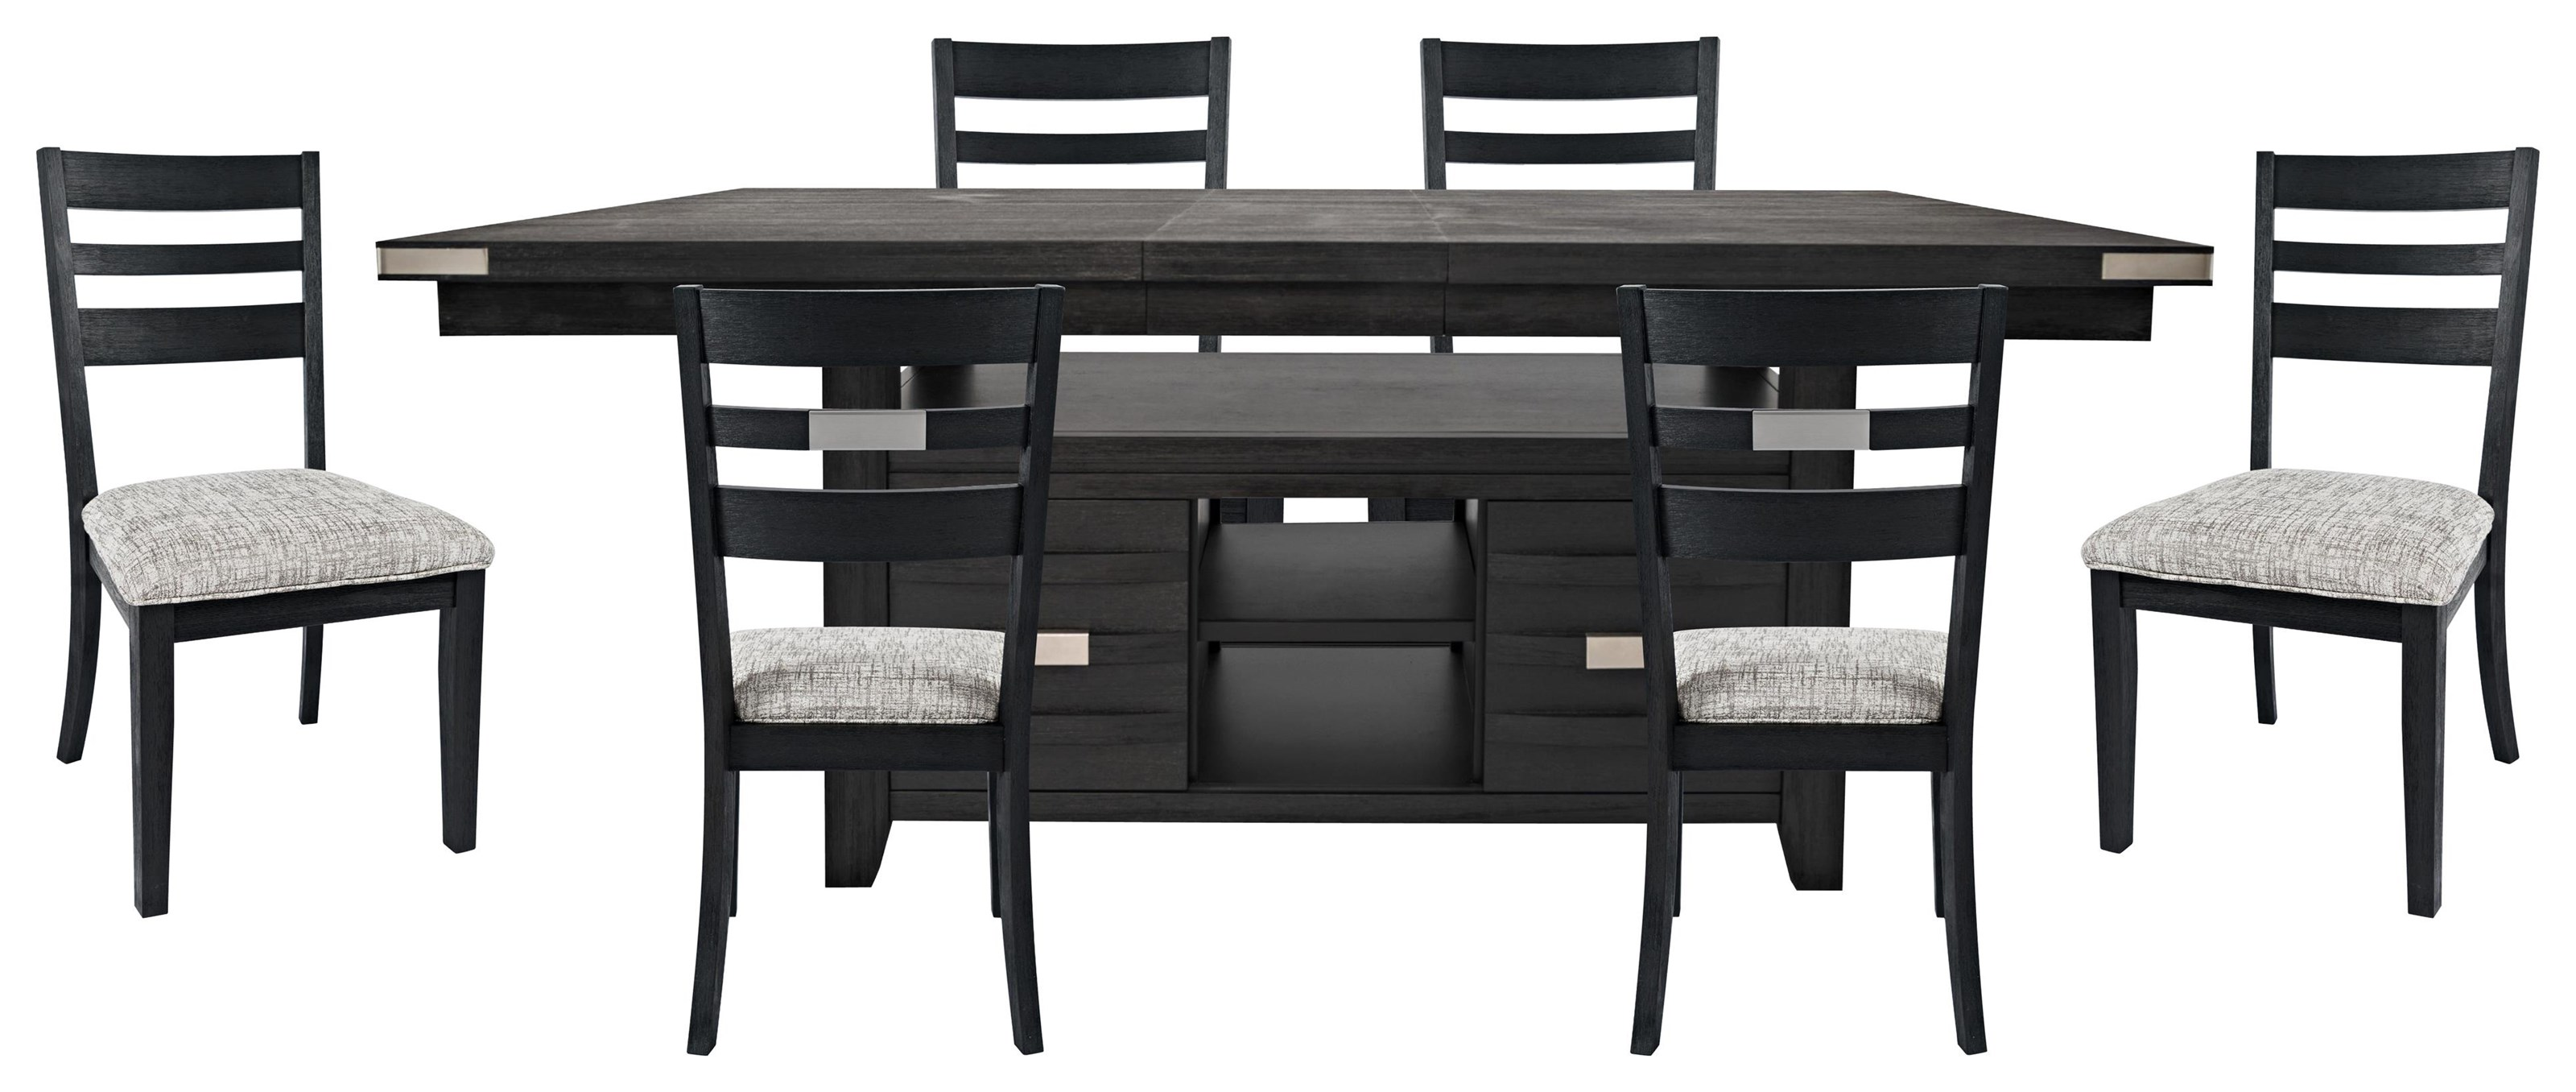 Altamonte Table & 6 Chairs at Bennett's Furniture and Mattresses